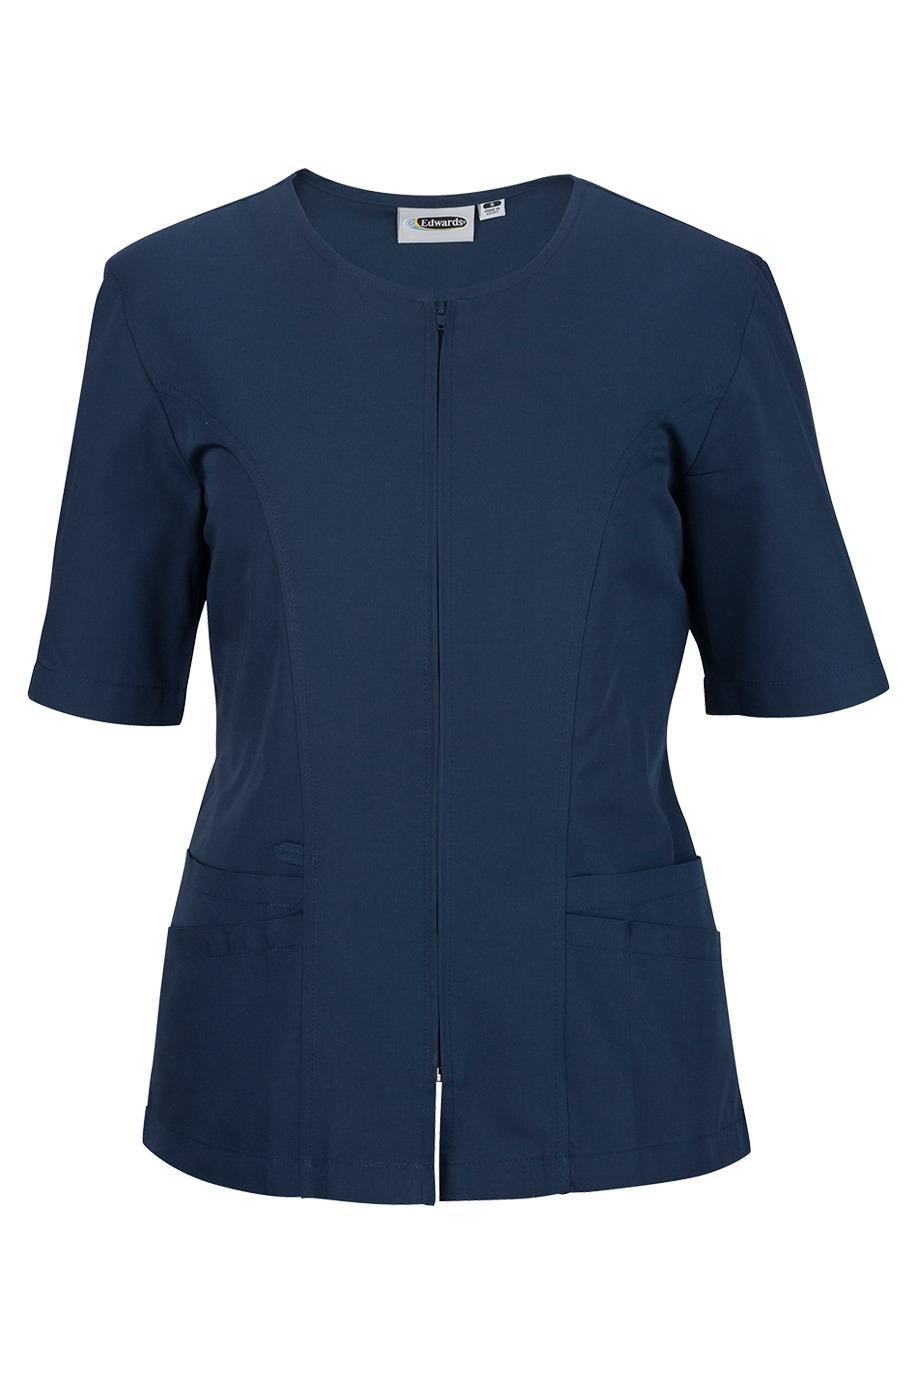 Edwards Garment 7887 - Housekeeping Zip Tunic